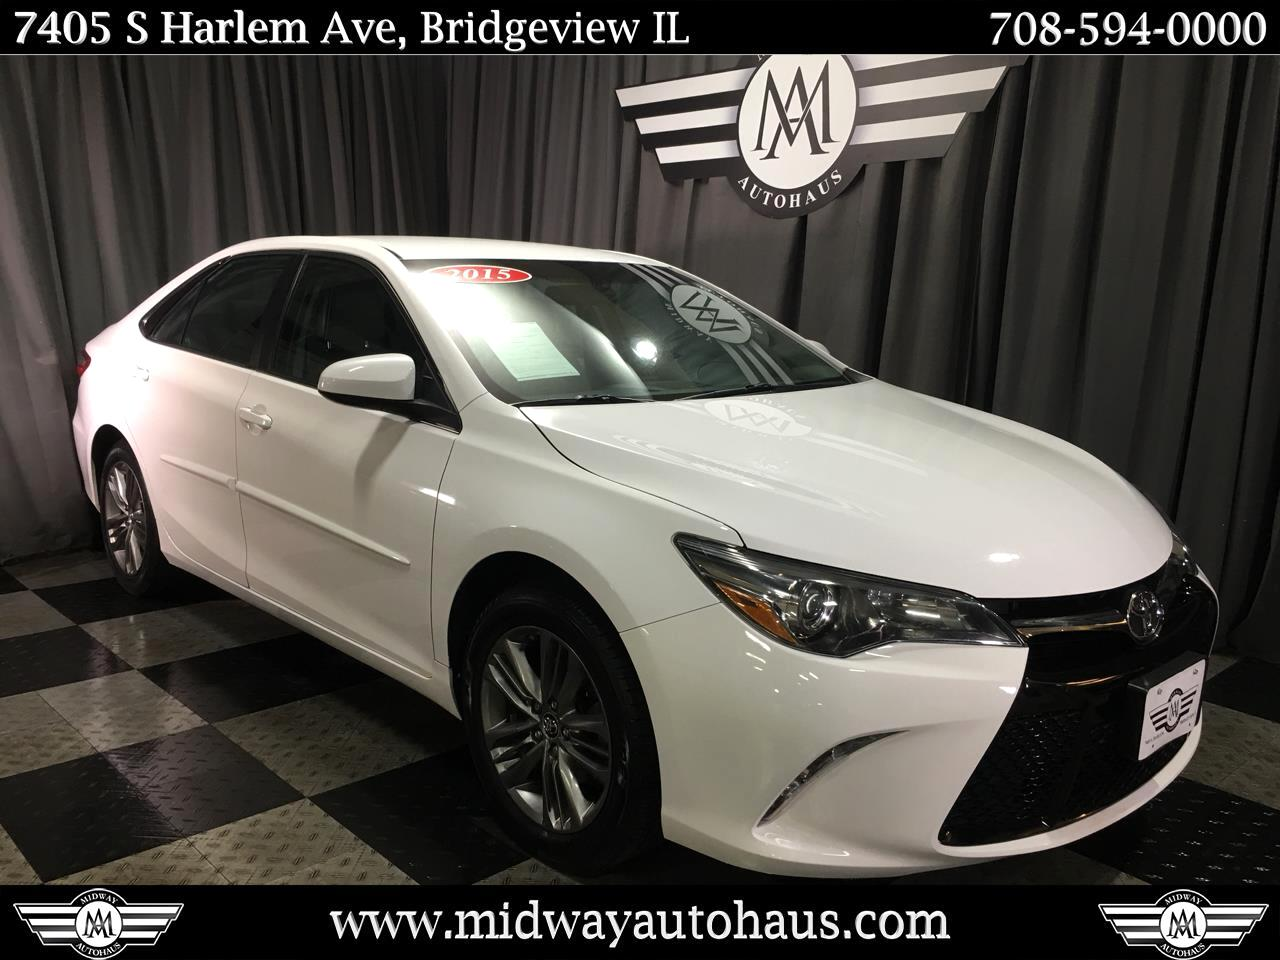 Pre-Owned 2015 Toyota Camry 2014.5 4dr Sdn I4 Auto LE (Natl)